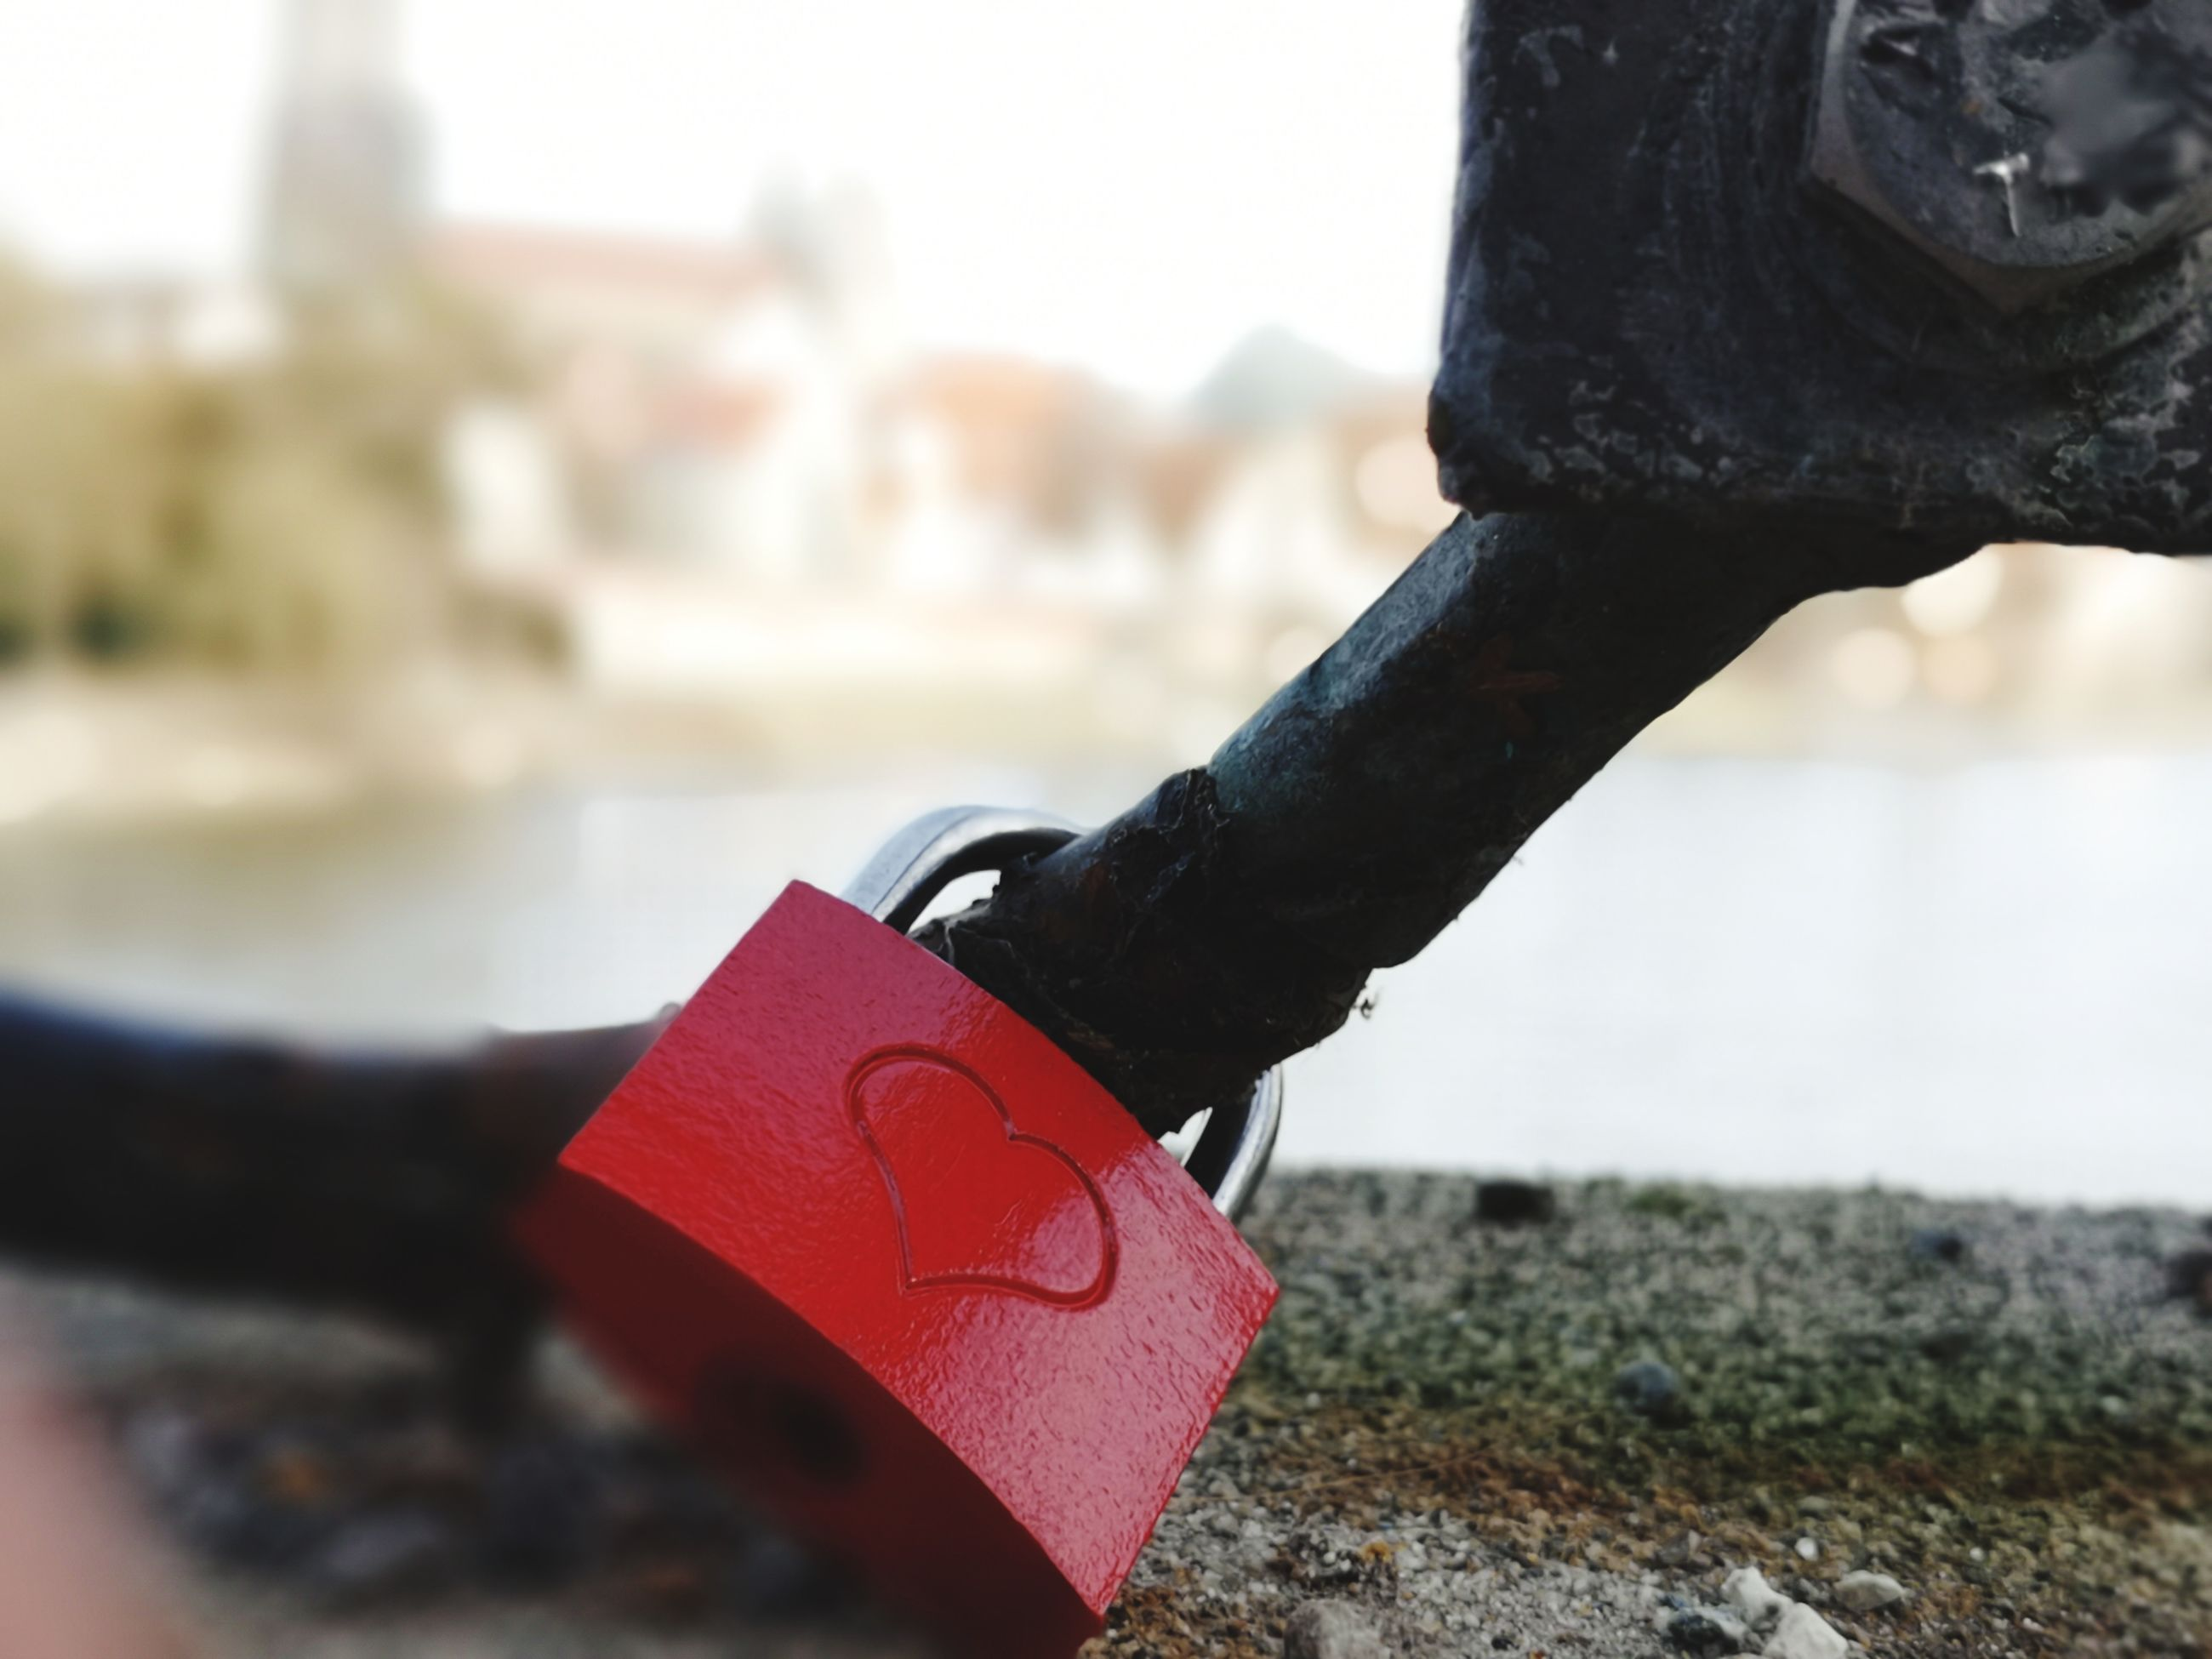 focus on foreground, close-up, emotion, day, positive emotion, love, red, no people, padlock, lock, heart shape, metal, security, safety, protection, outdoors, architecture, selective focus, solid, love lock